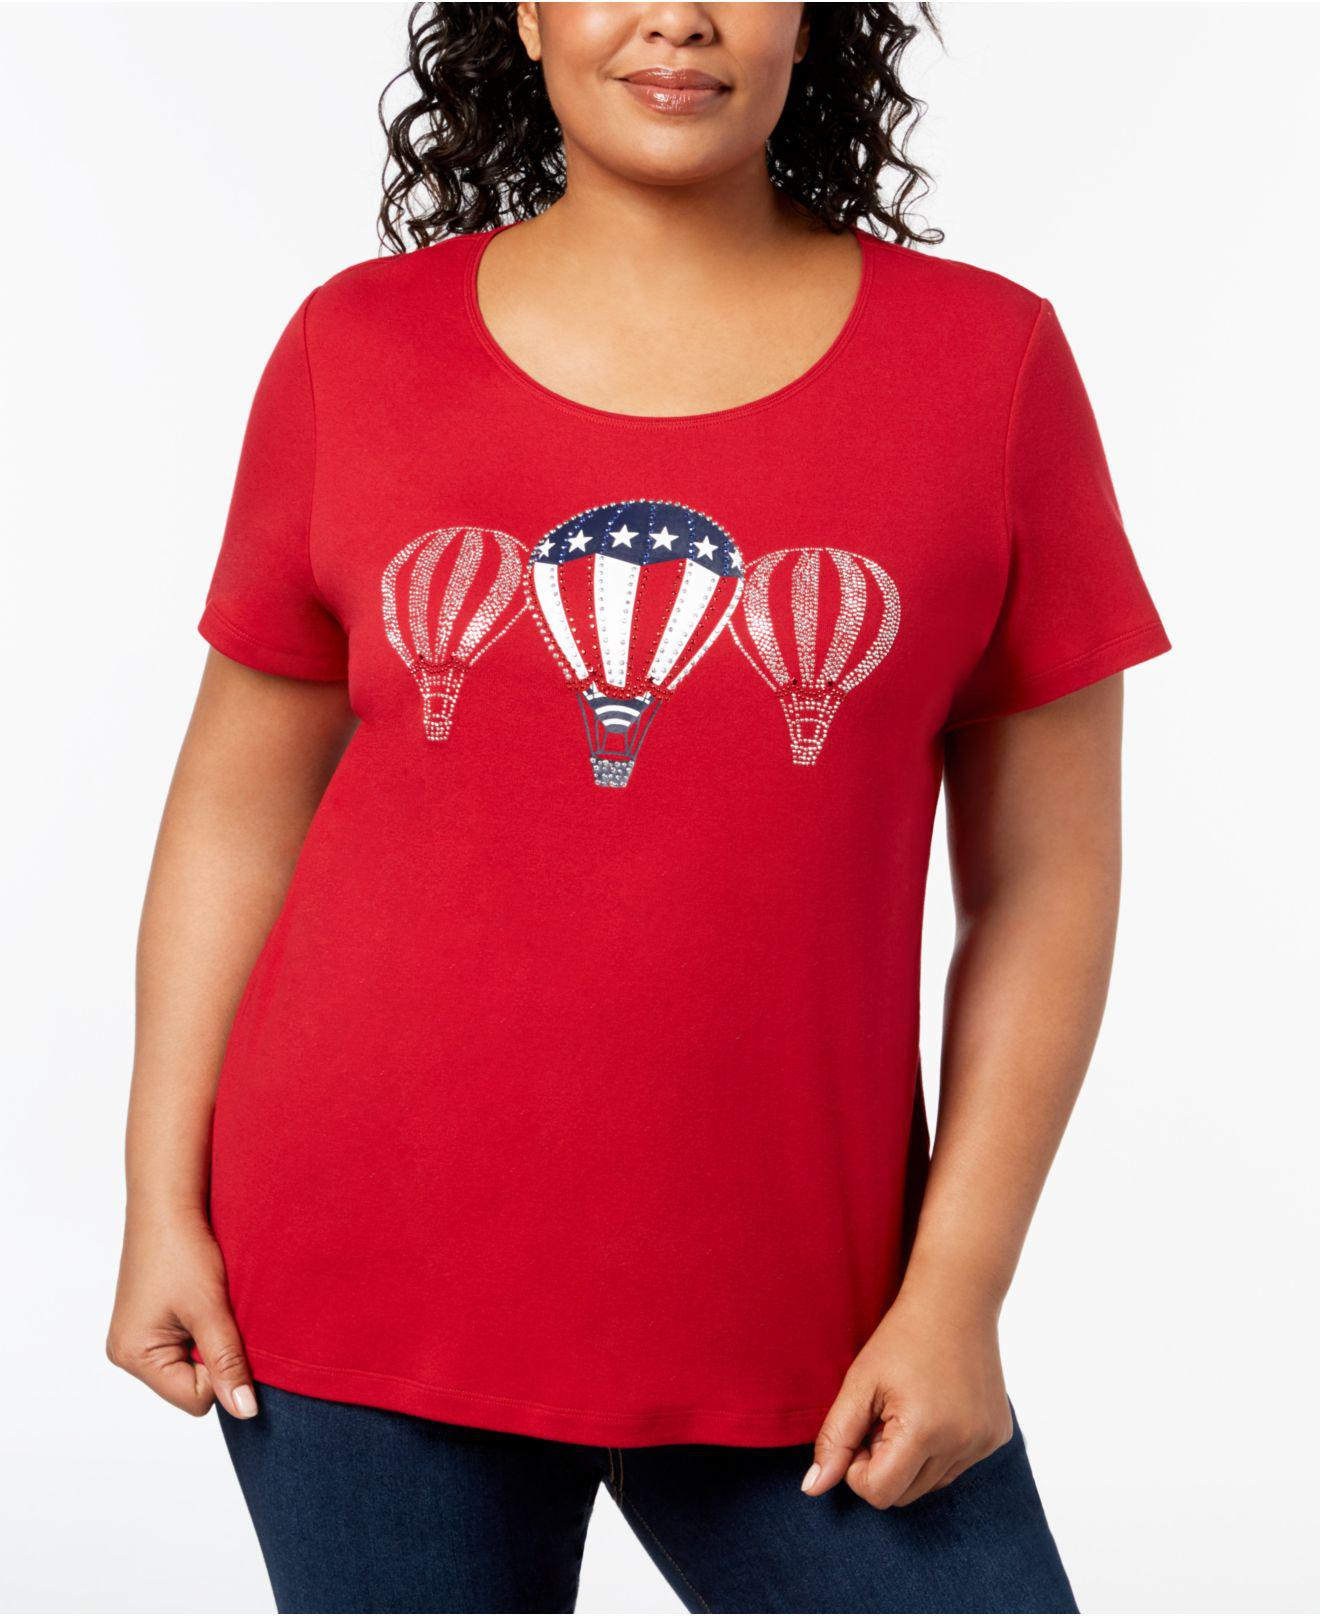 95f34181e2934 Karen Scott. Women s Red Plus Size Cotton Graphic T-shirt ...